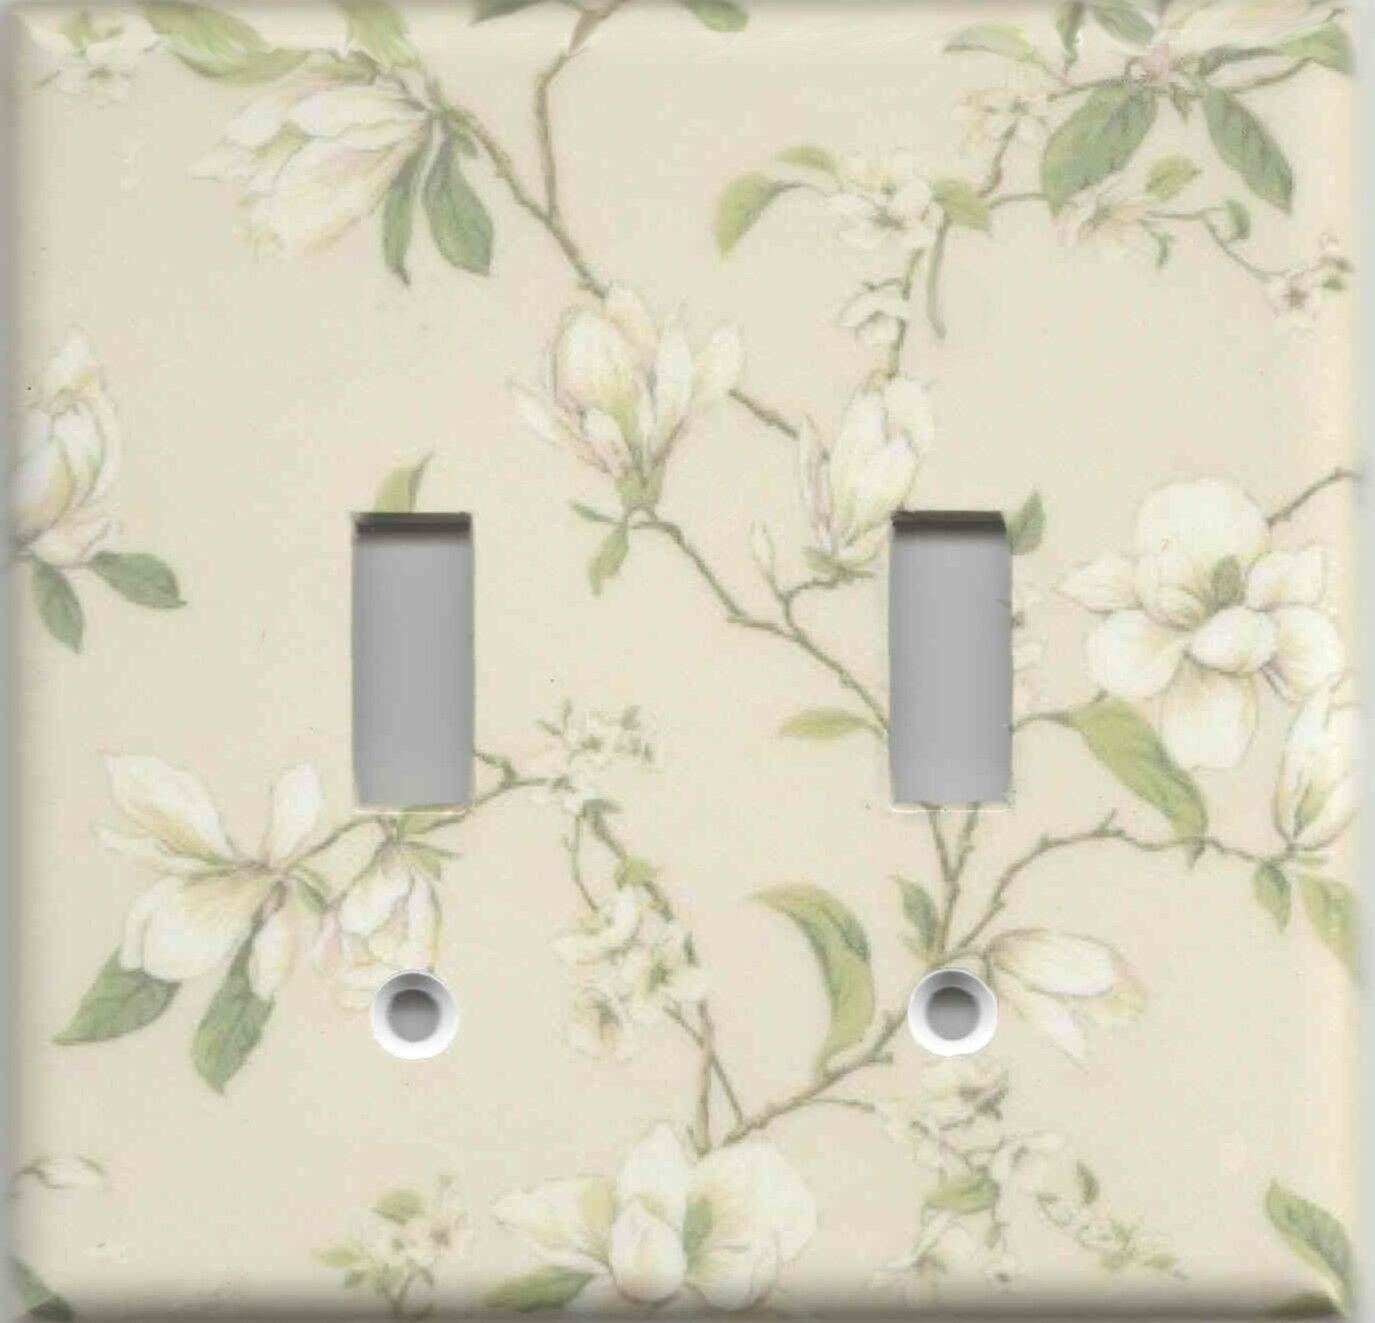 Magnolia Flower On Beige Home Wall Decor Double Light Switch Plate Ebay